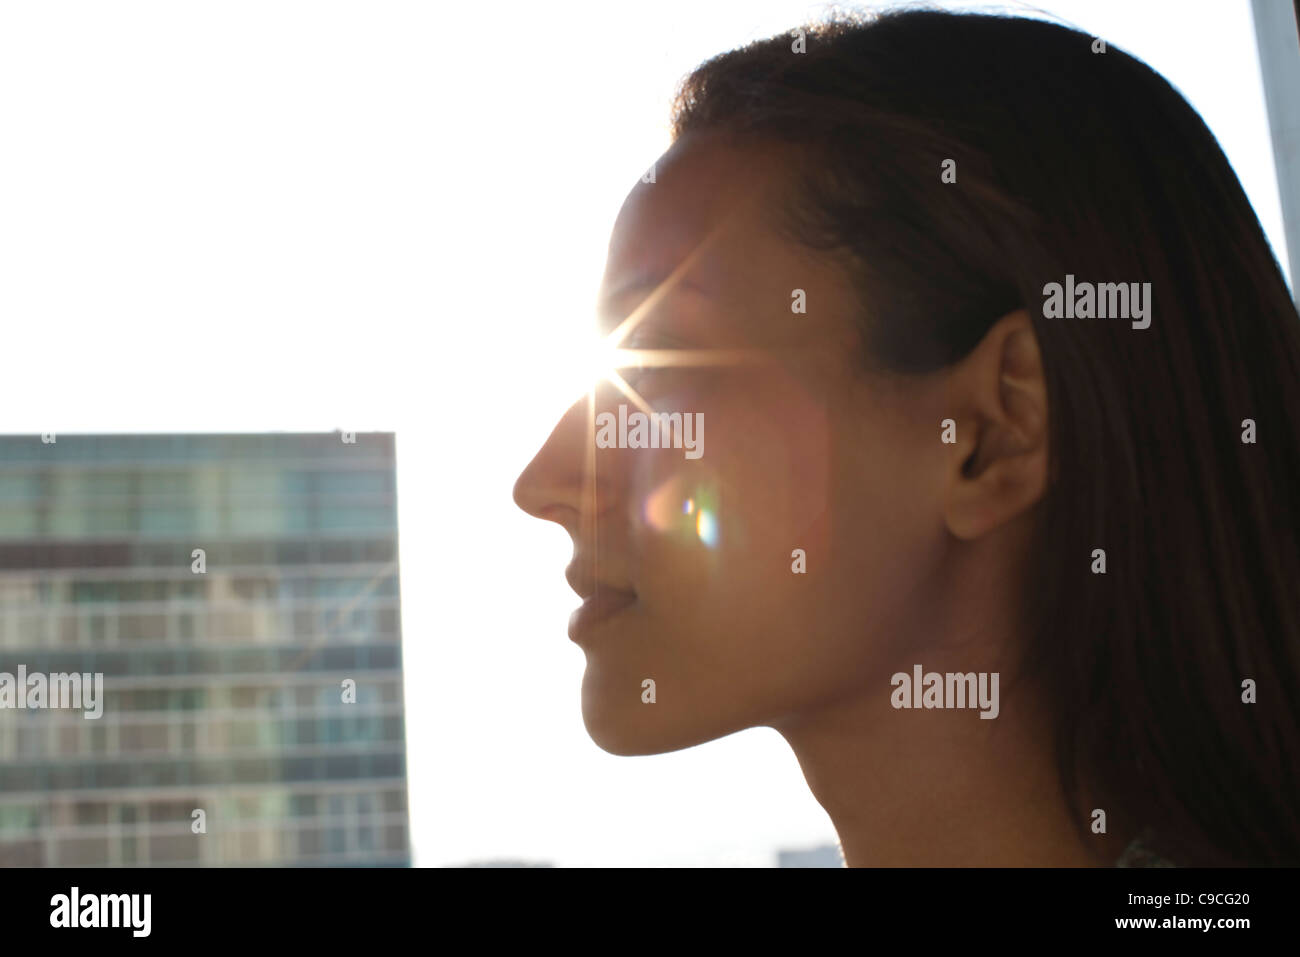 Silhouette of woman's face, sun shinning in background - Stock Image